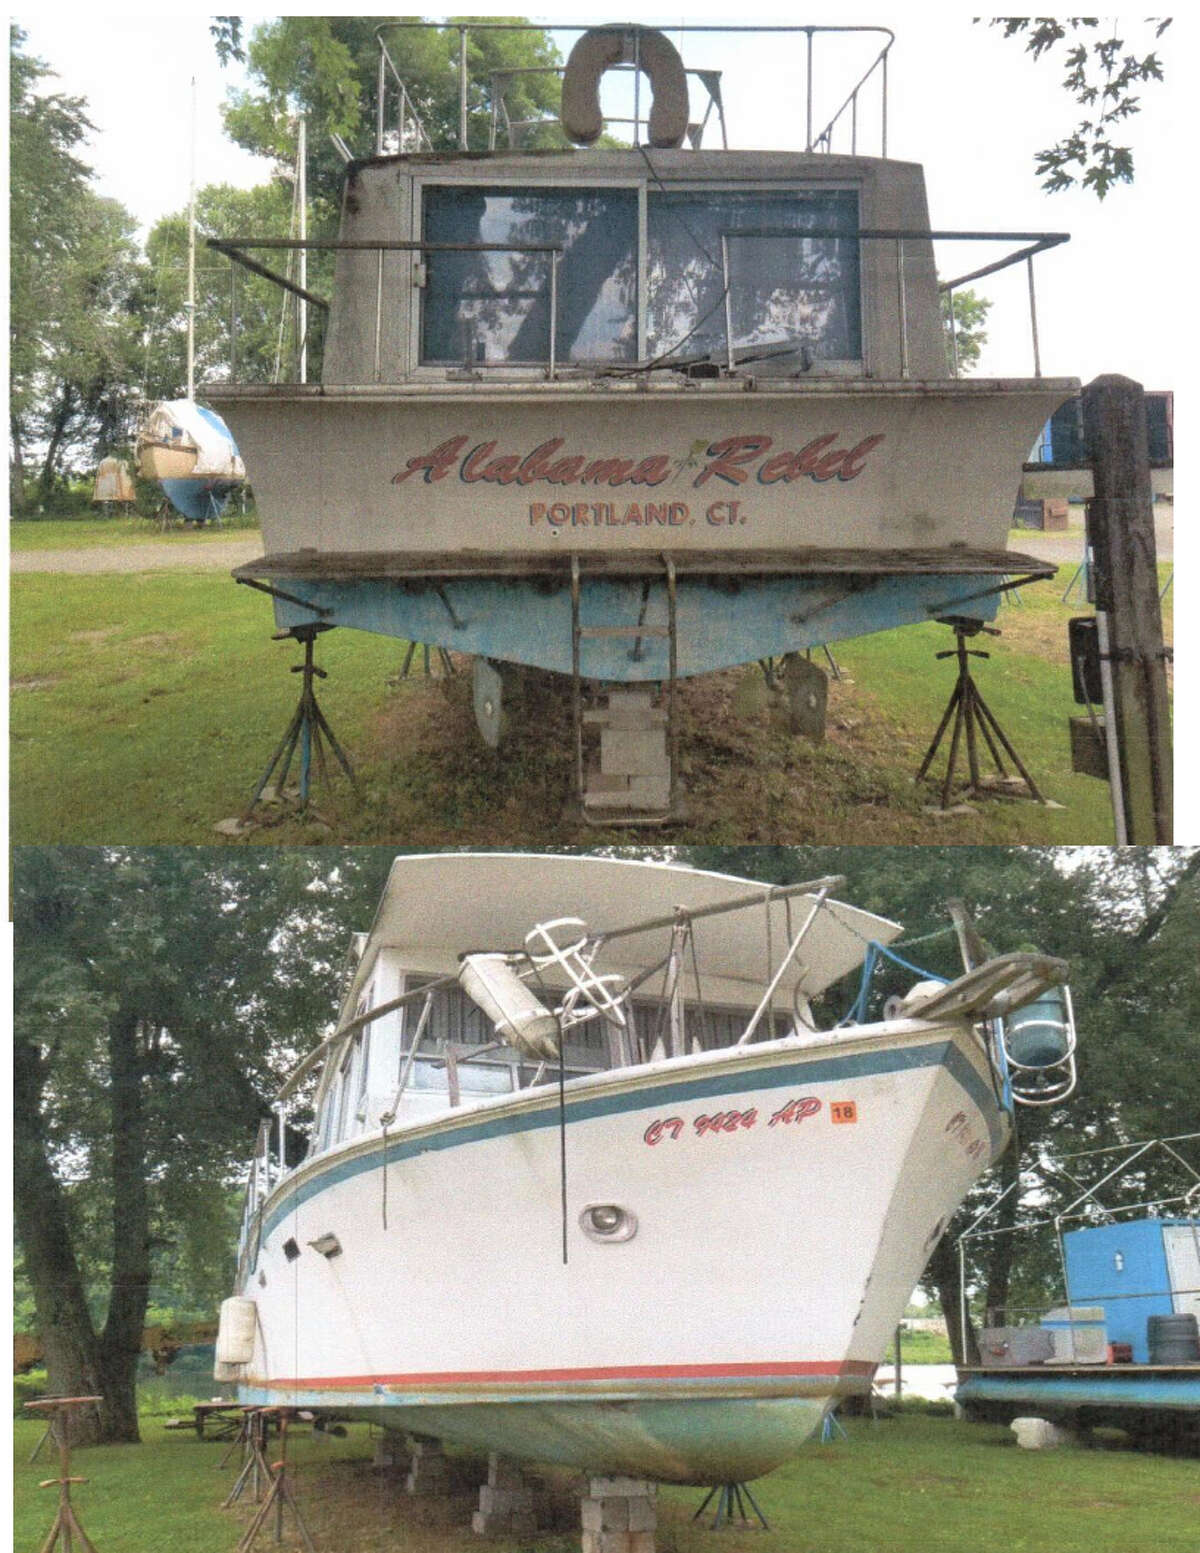 Registration Number/Hull Identification Number: CT 9424 AP/7091639 Make/Model: Witchcraft/Houseboat Length: 39' Location: Portland/Connecticut River Dates of suspension: Sept. 11, 2020 - Oct. 26, 2020